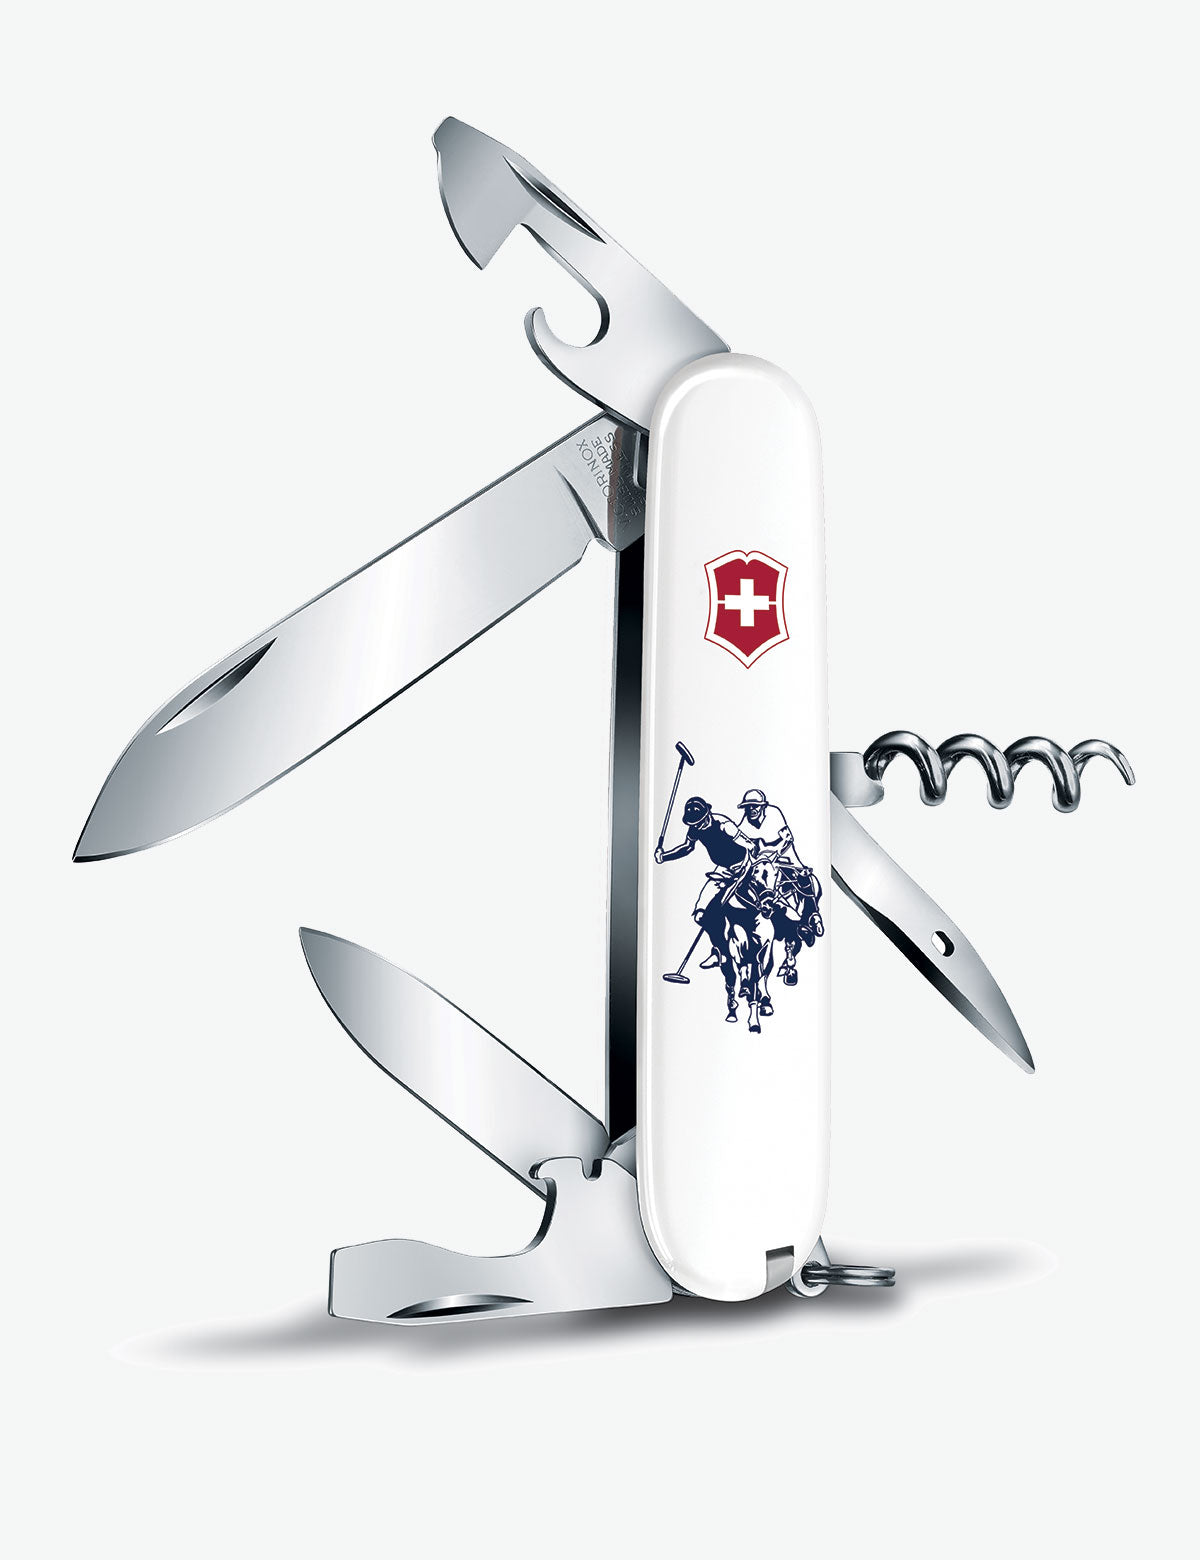 SPARTAN HARTFORD 91MM SWISS ARMY POCKET KNIFE - U.S. Polo Assn.